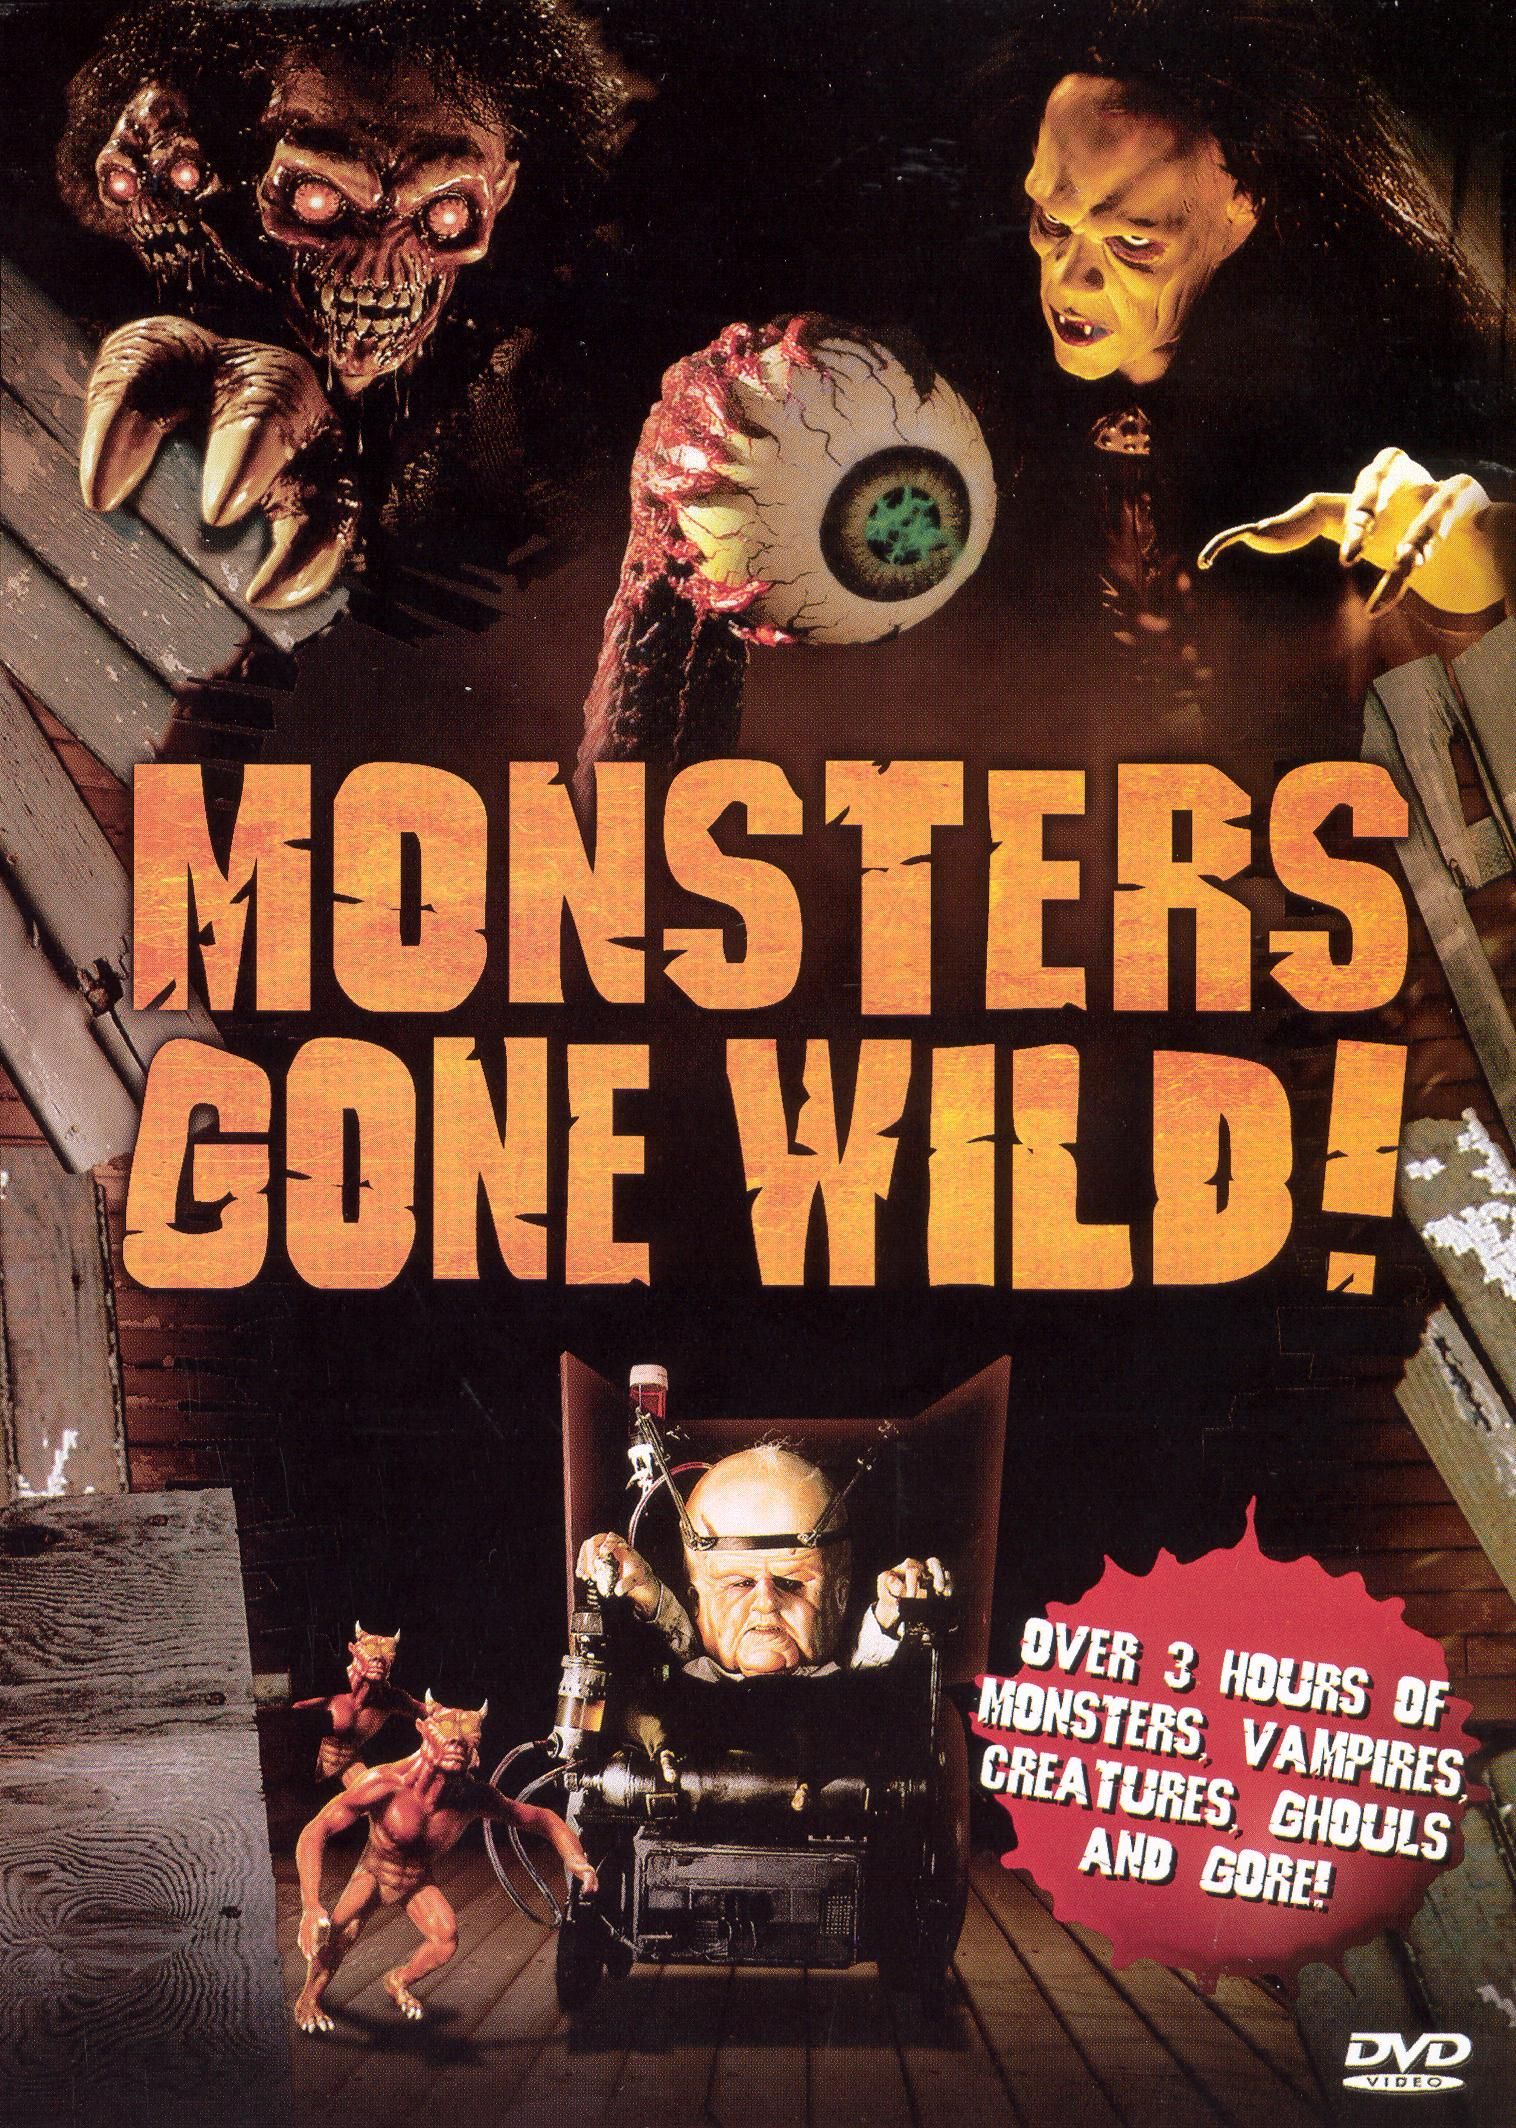 Monsters Gone Wild!